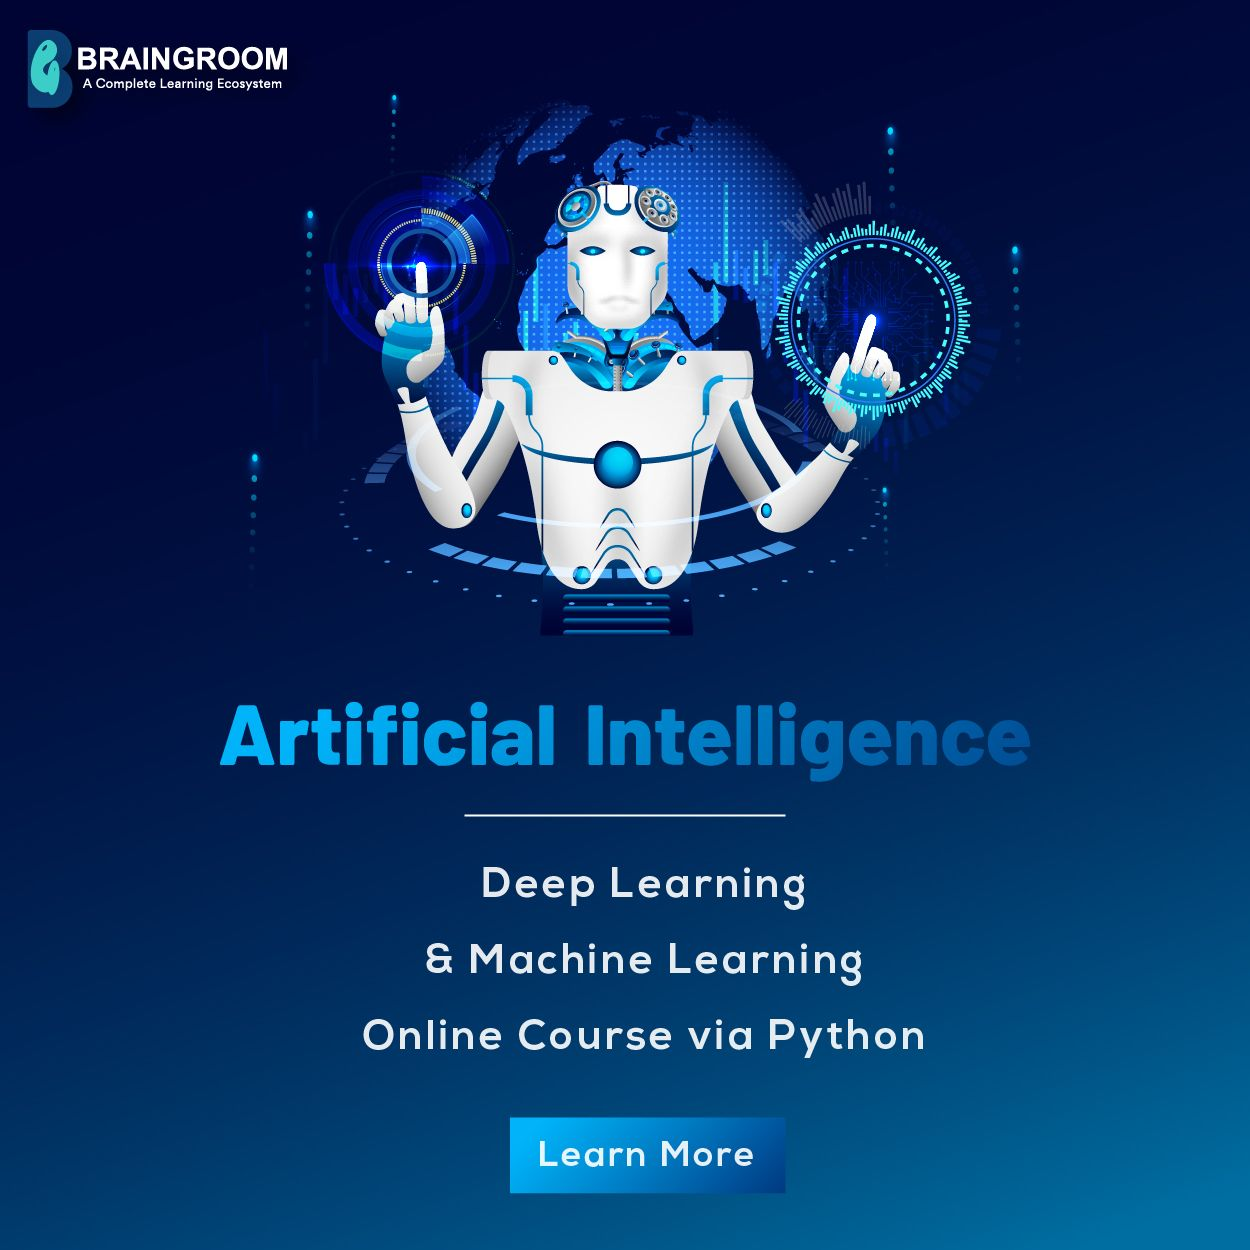 artificial#artificial_intelligence#nanotechnology#matlab#singularity